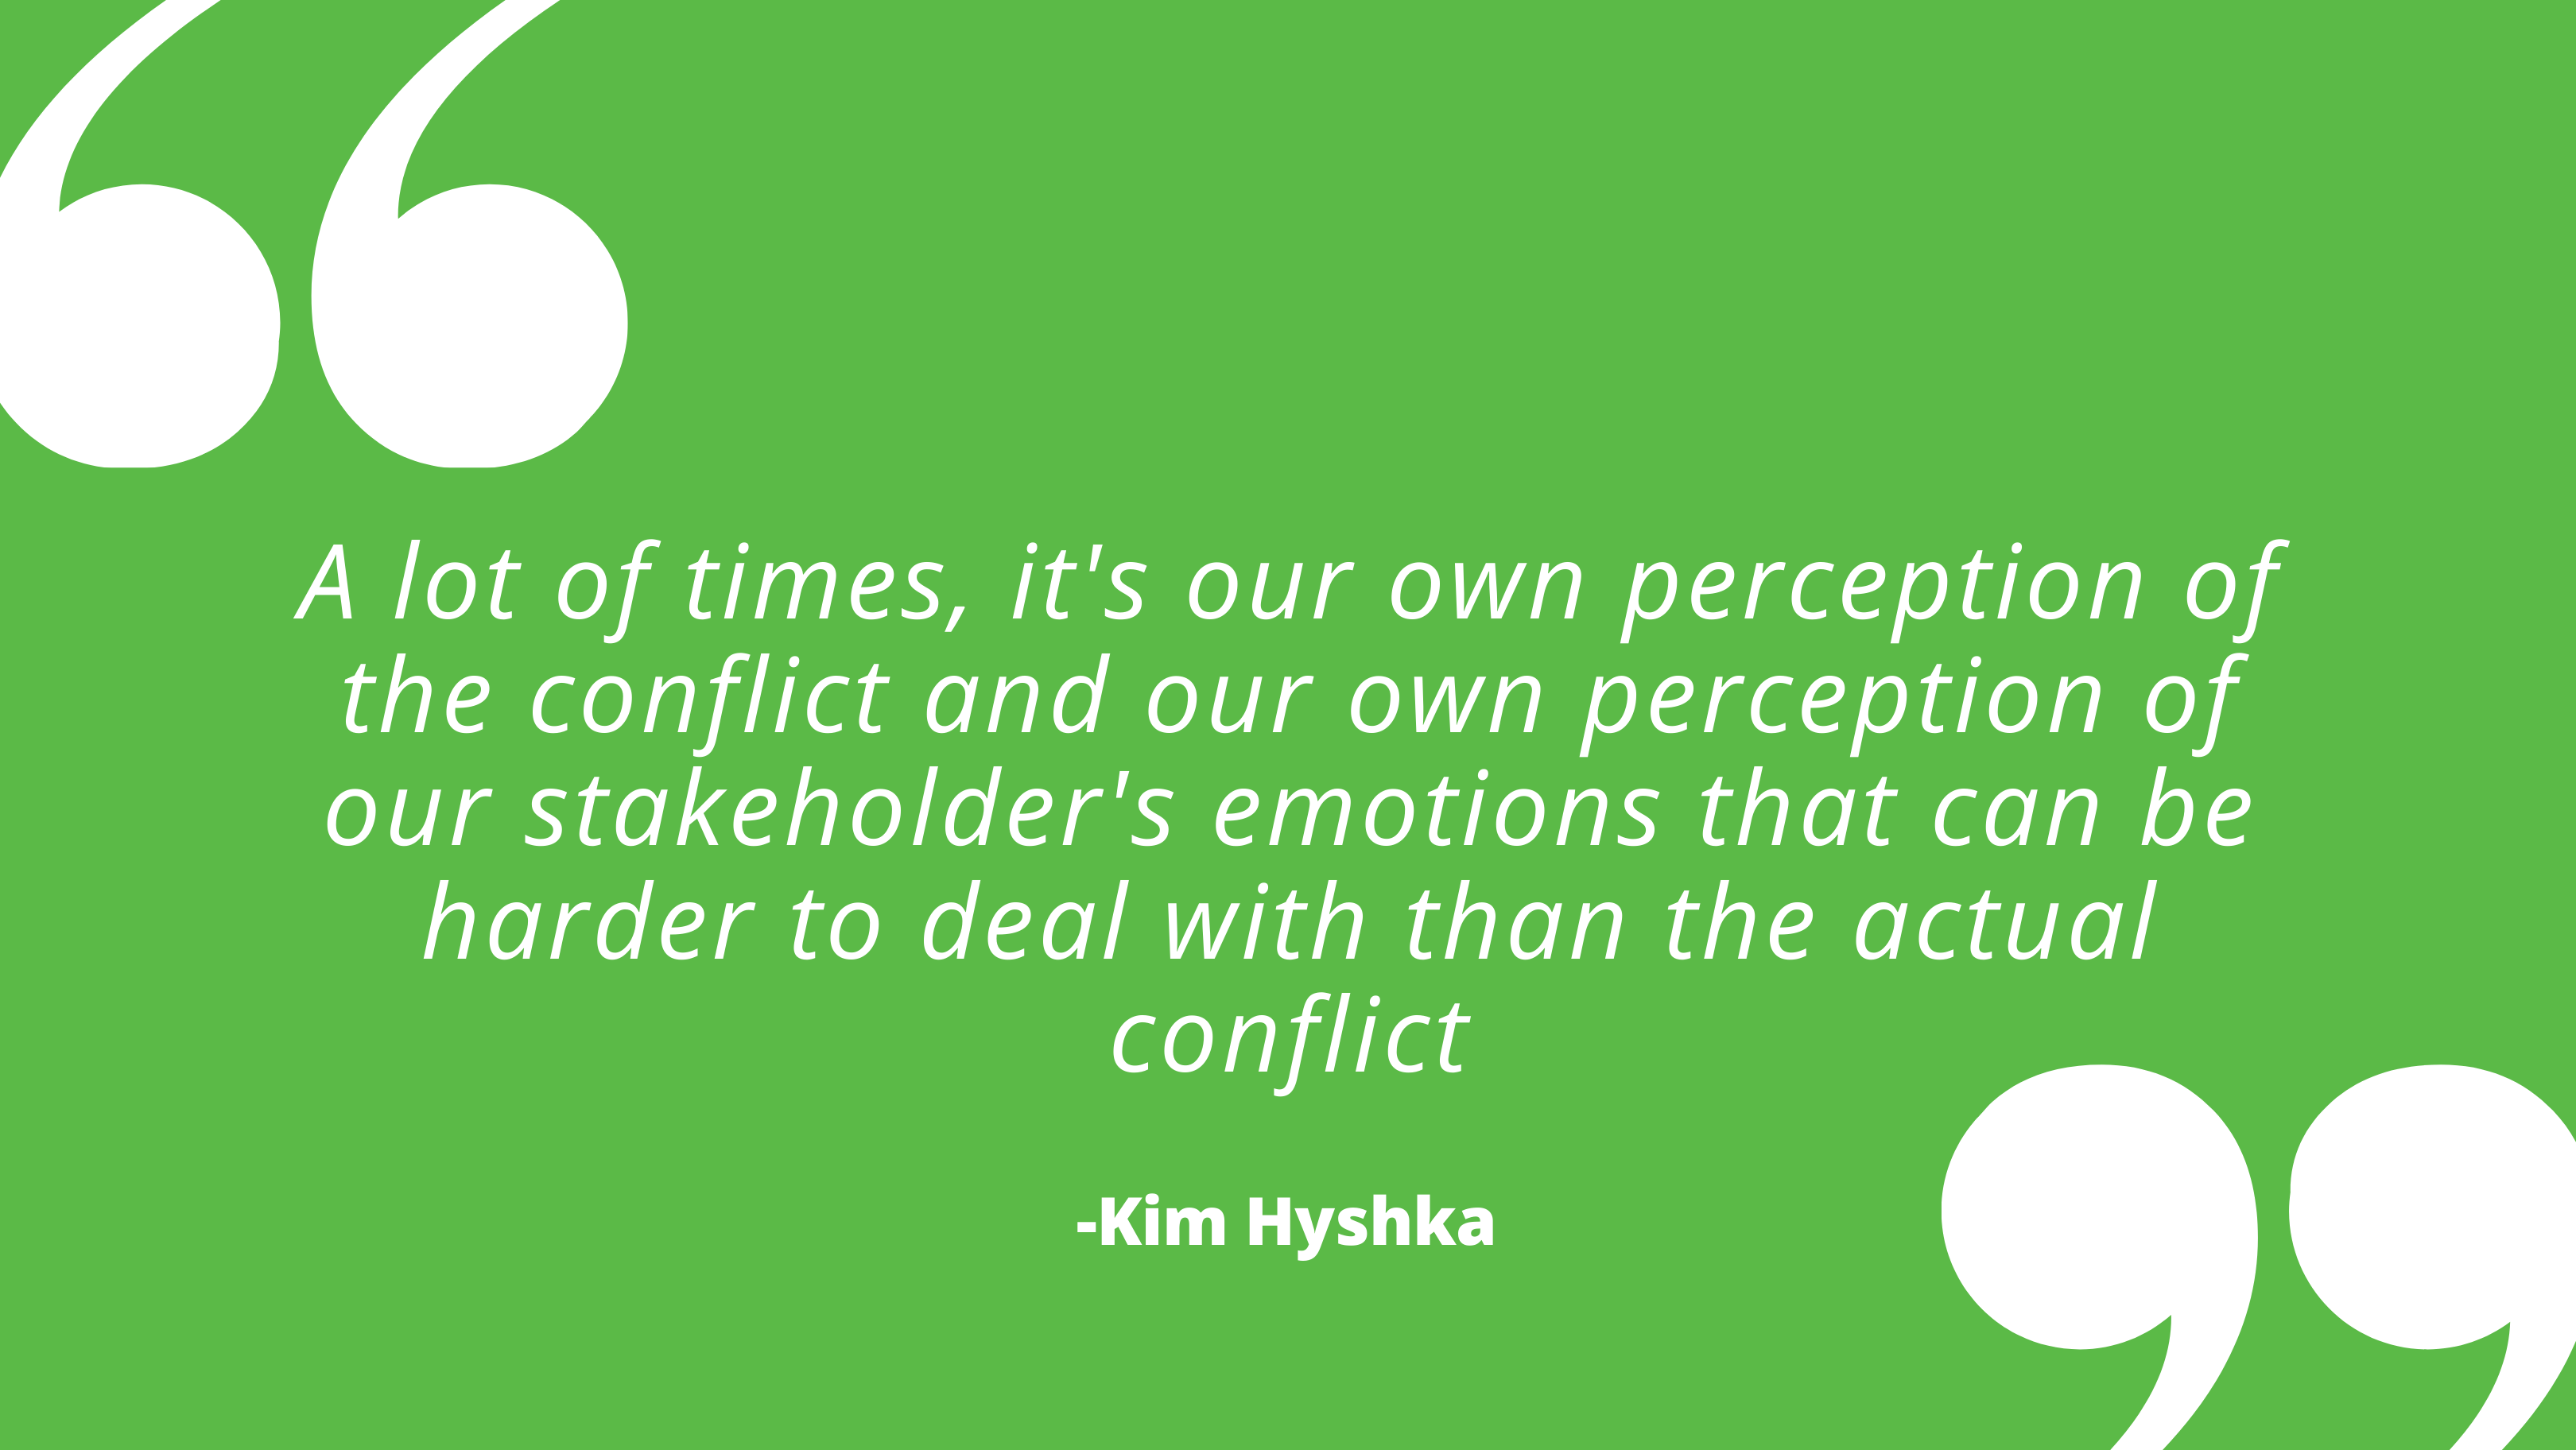 Top 5 Tips for Diffusing Conflict During Online Stakeholder Engagement (3)